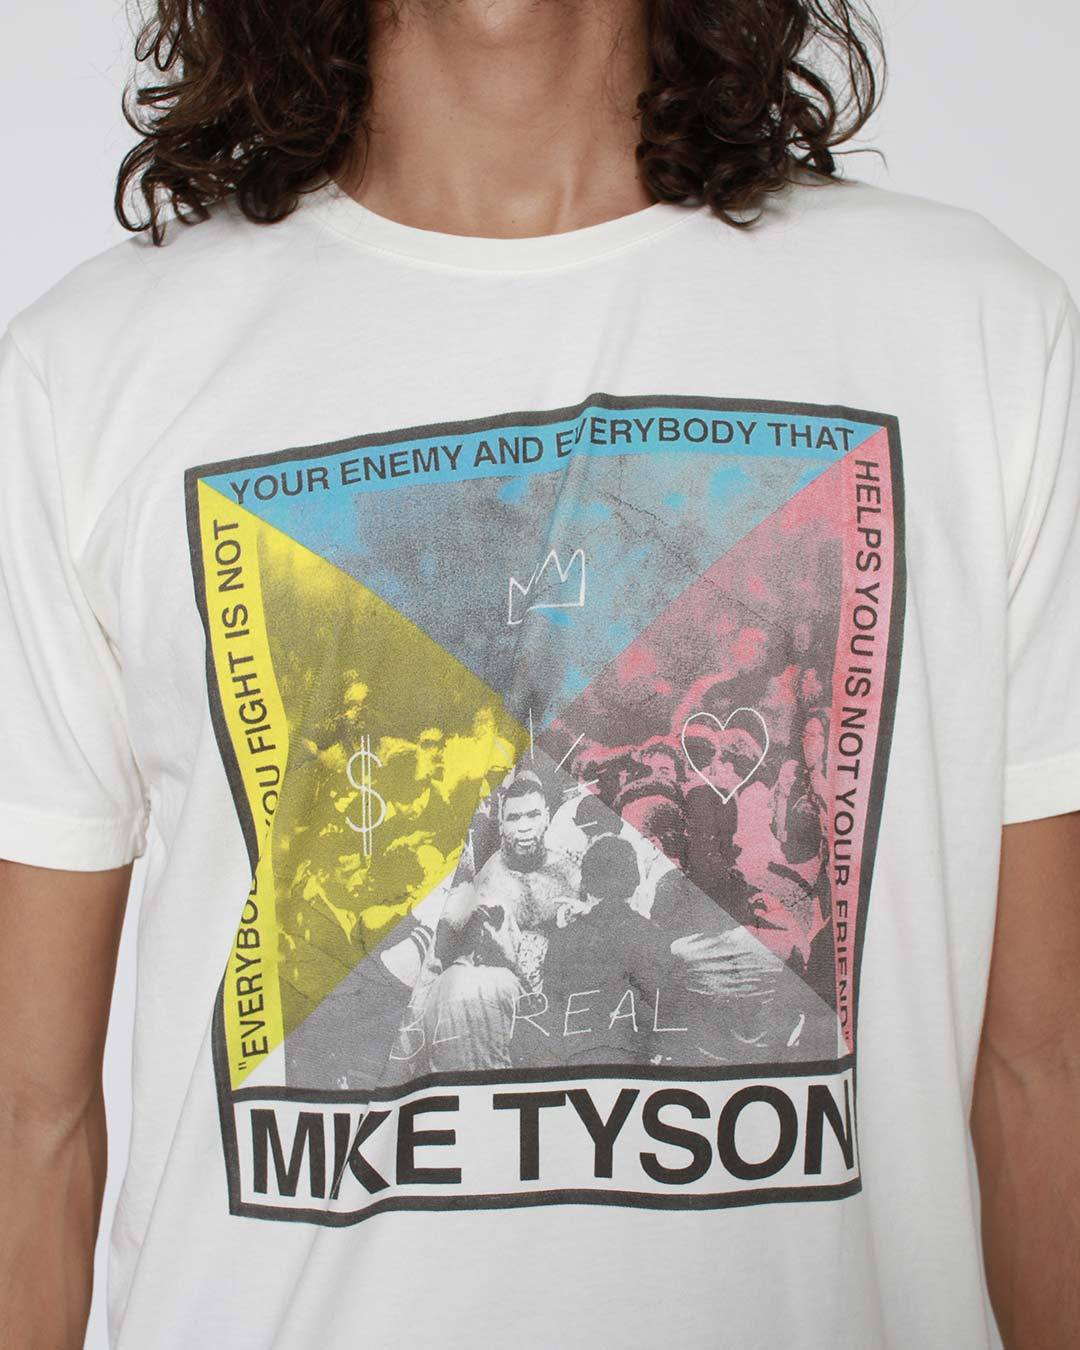 Mike Tyson Friends and Enemies Tee